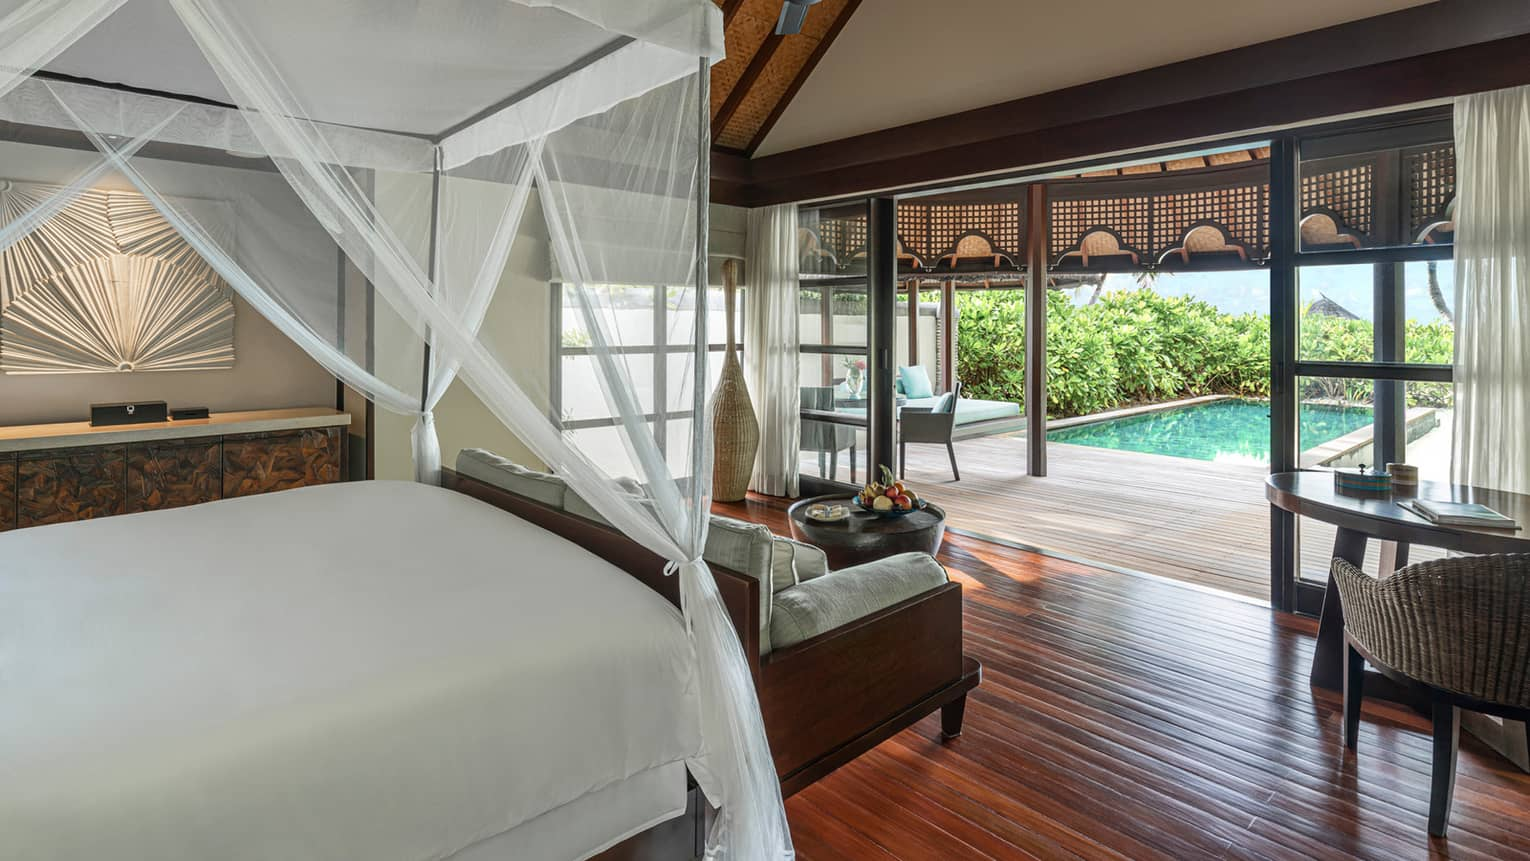 A white canopy hangs from the ceiling, covering a dark wood bed that overlooks a private pool surrounded by lush vegetation in the Sunset Beach Bungalow